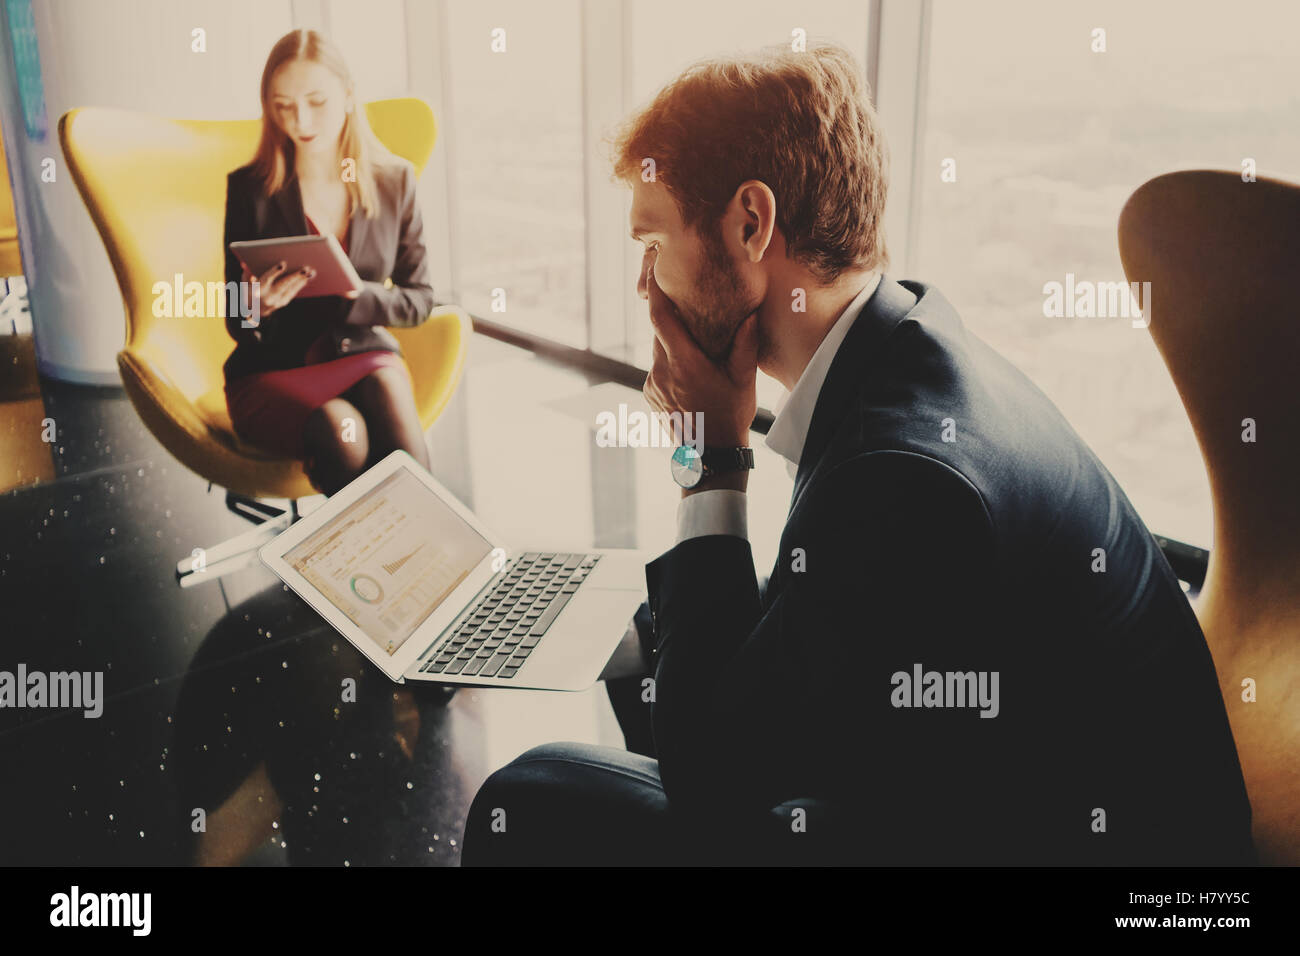 Bearded thoughtful man entrepreneur in formal business suite sitting on yellow armchair with laptop with diagrams - Stock Image